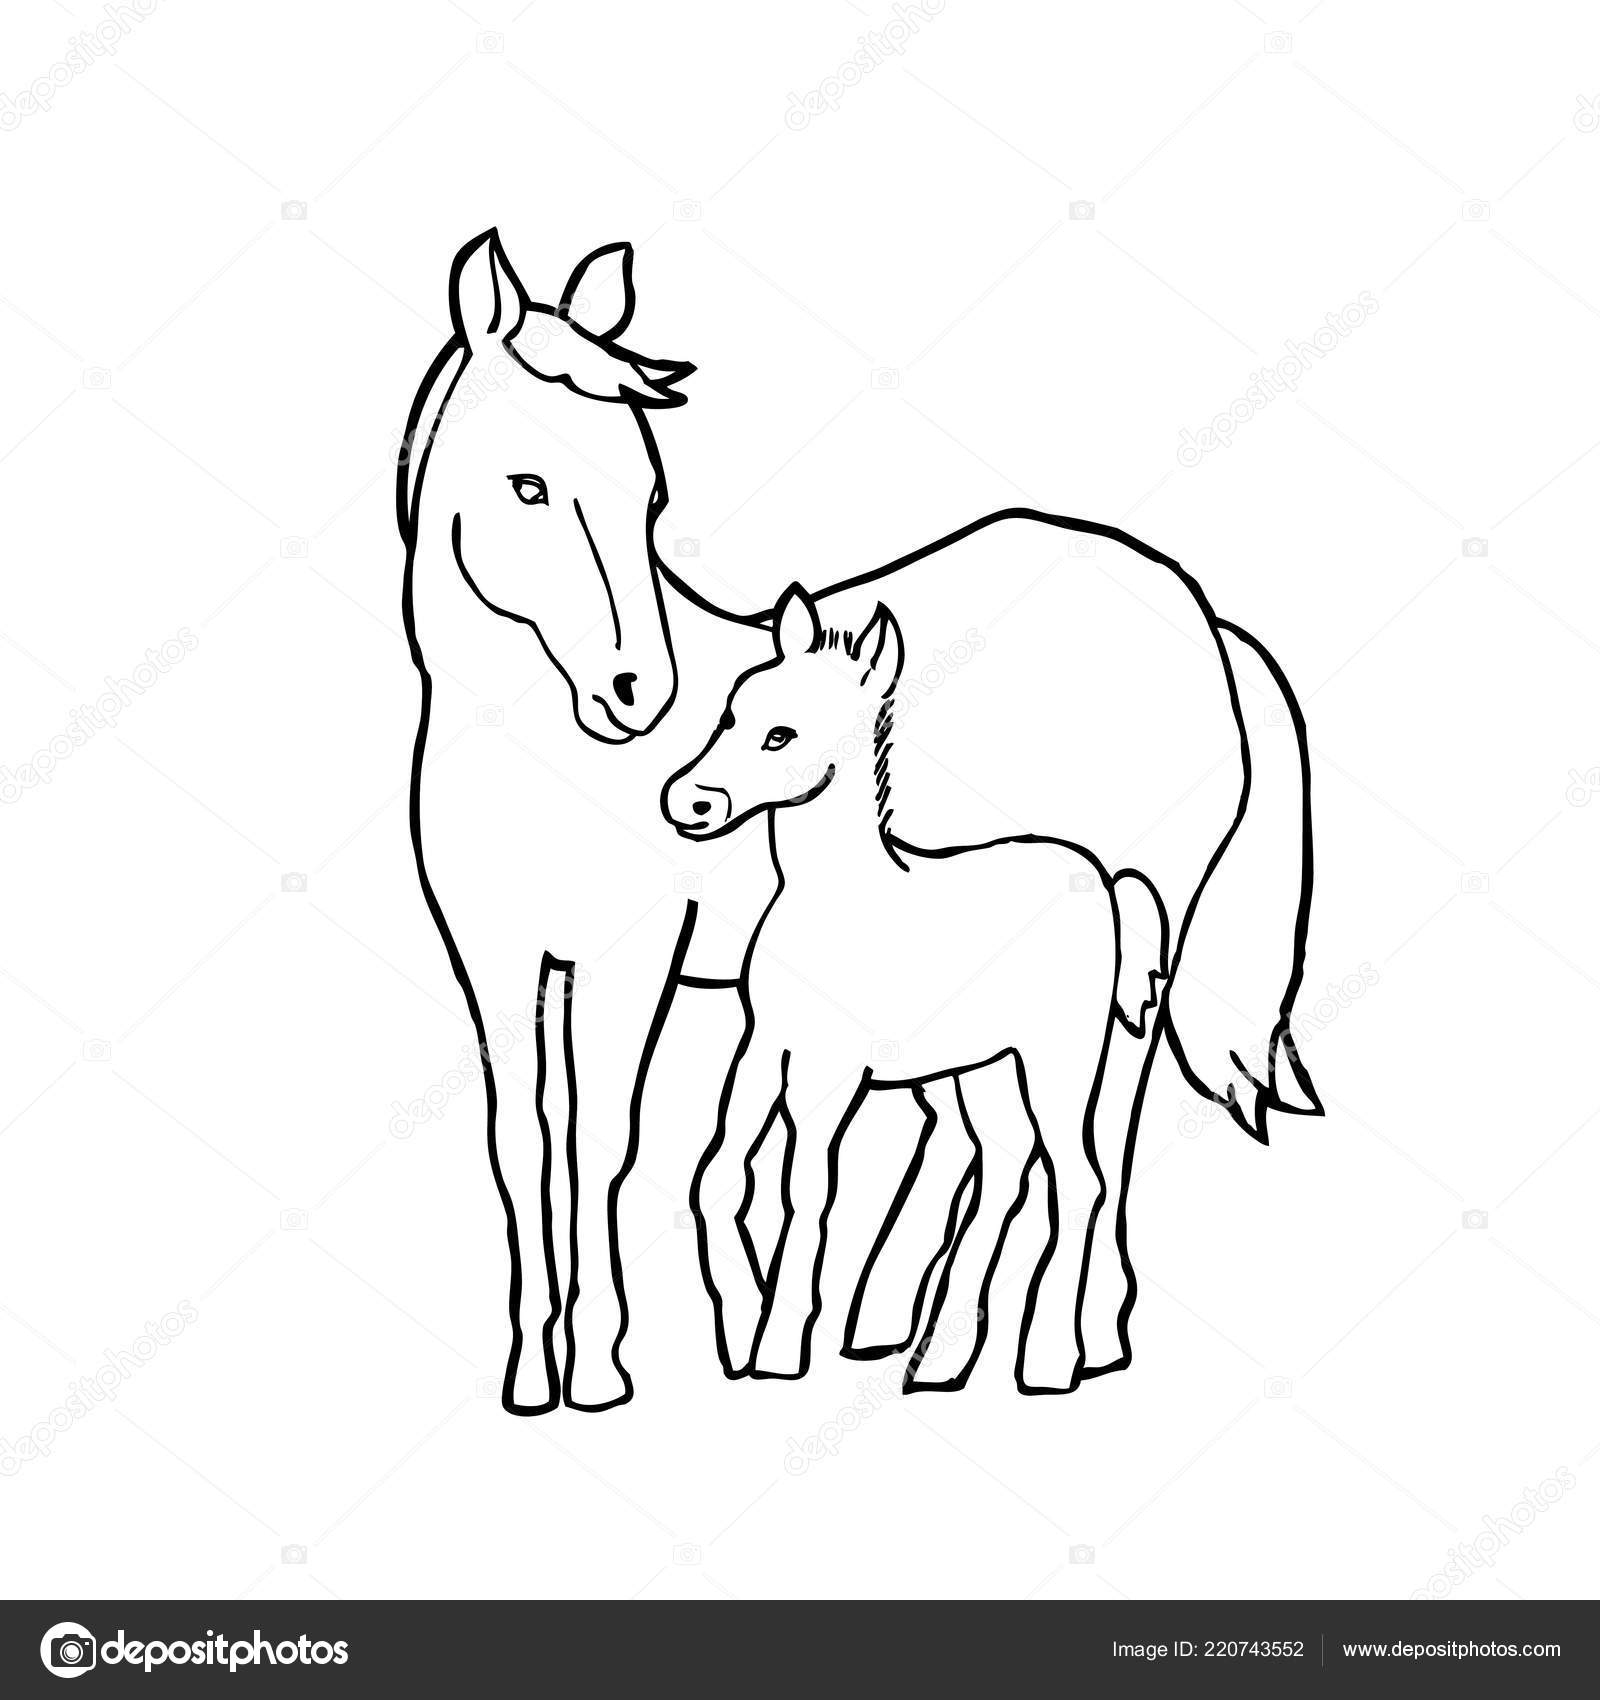 Vector Illustration Two Horses Outline Drawing White Background Stock Vector C Virivlev 220743552